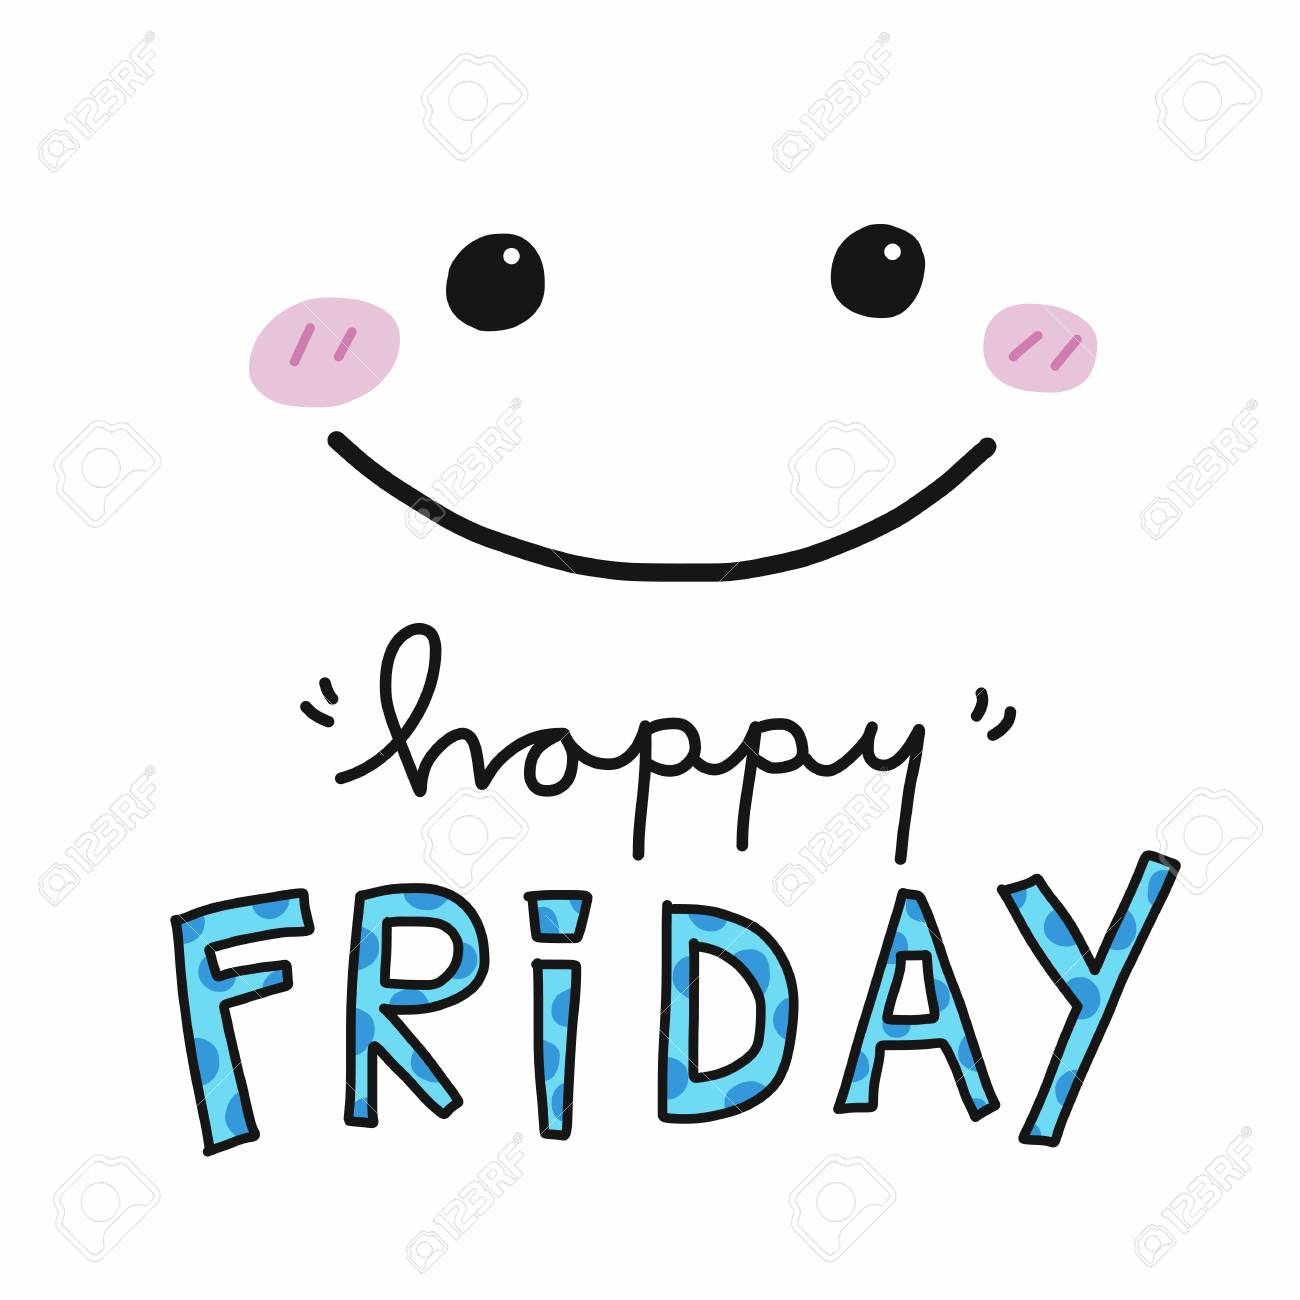 Happy Friday Word And Cute Smile Face Vector Illustration Royalty